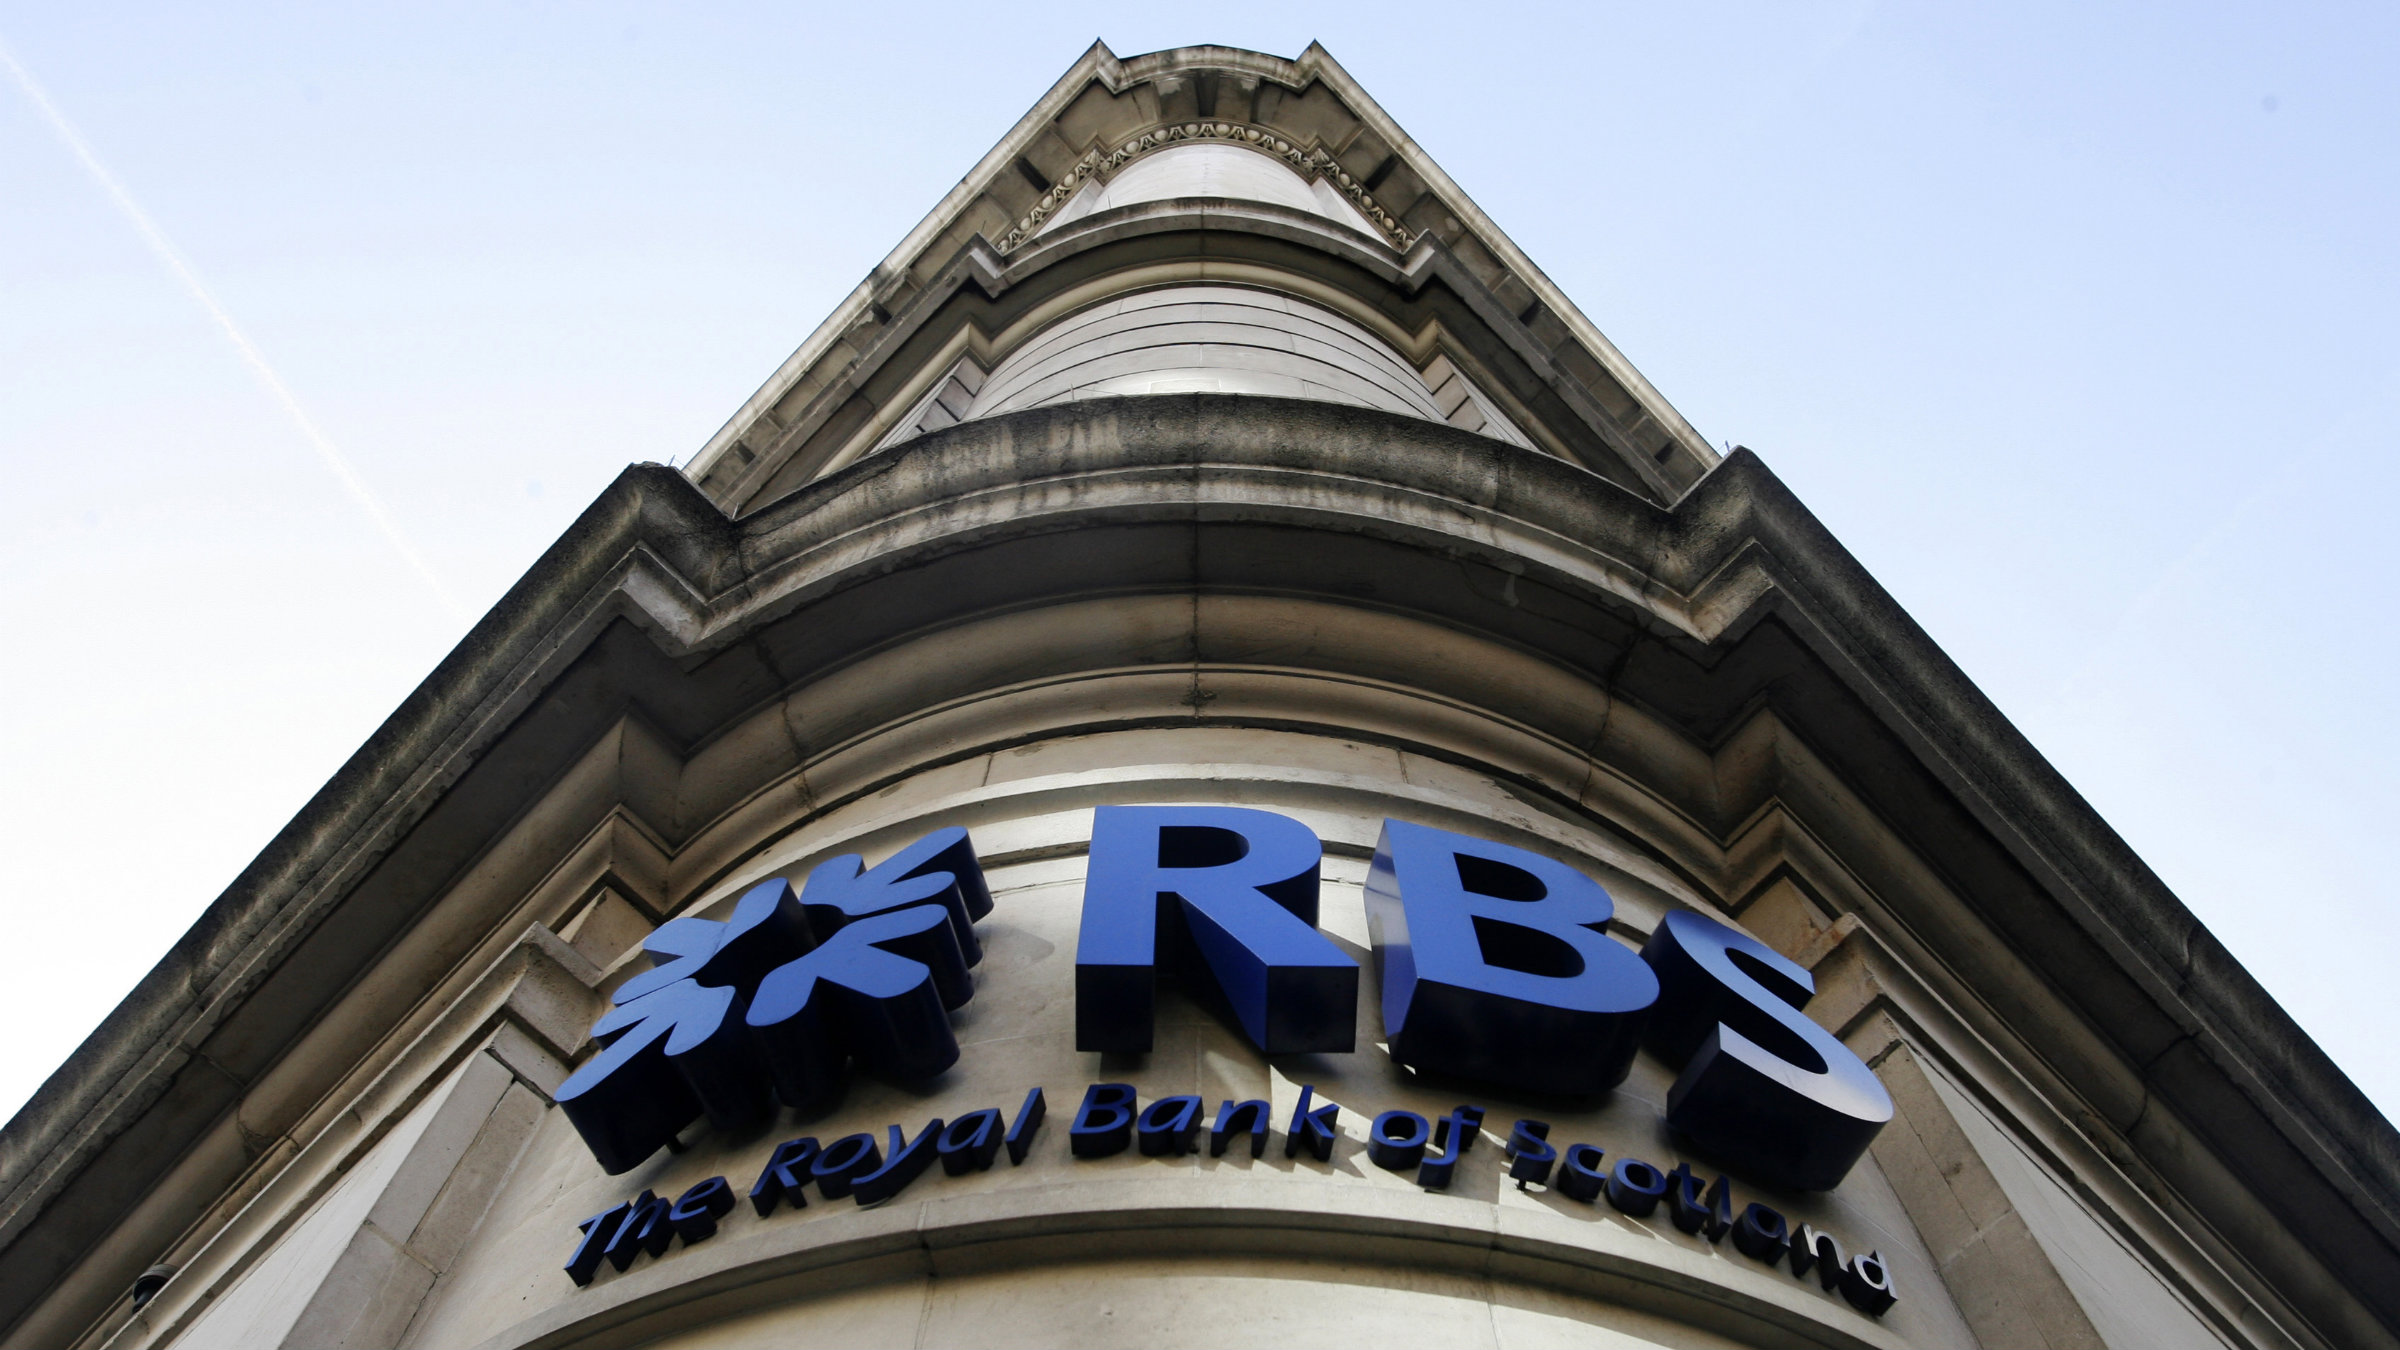 A Royal Bank of Scotland branch is seen, in central London.